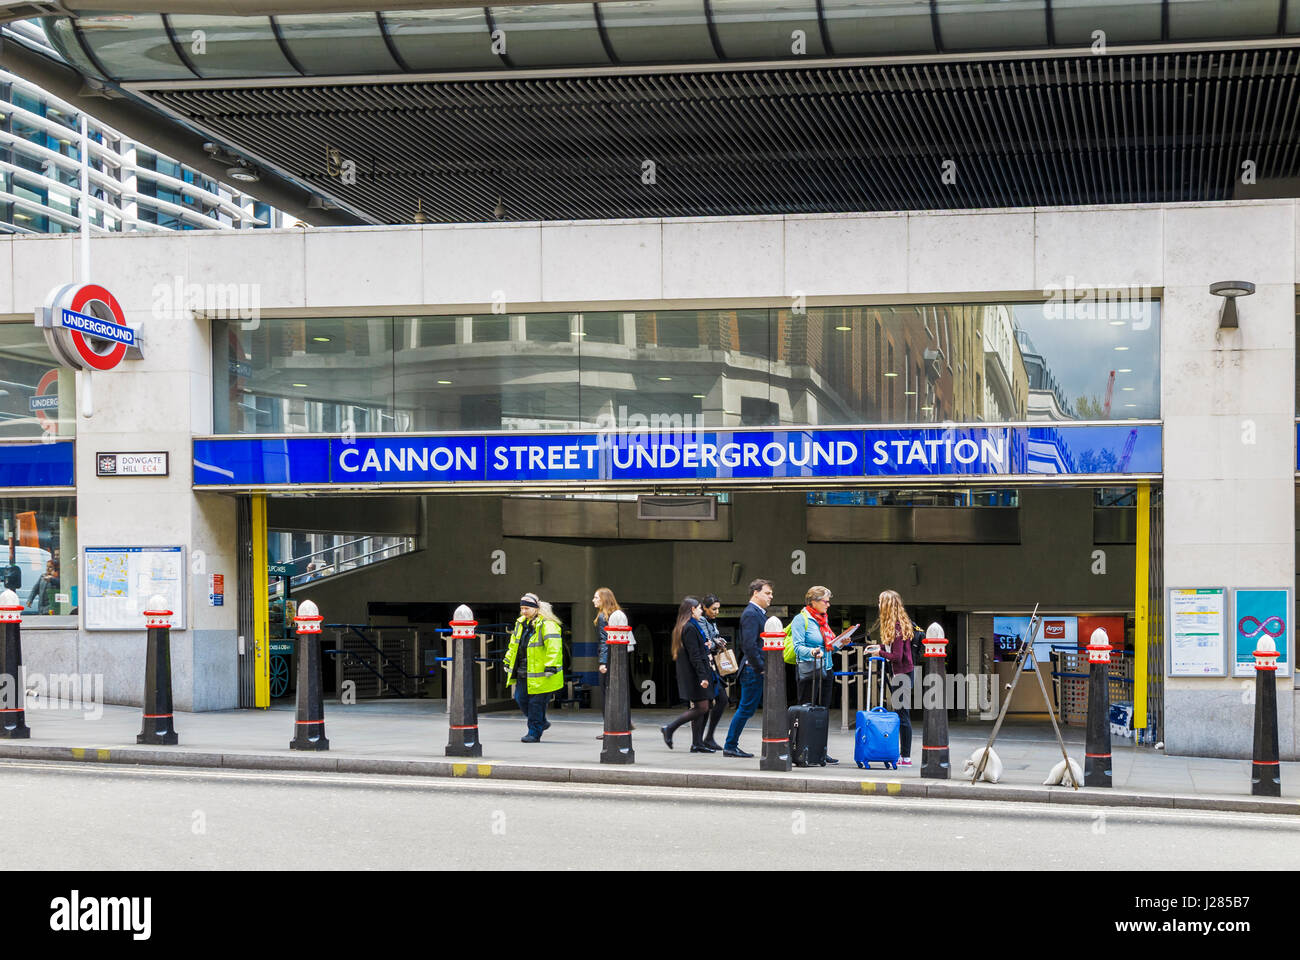 Public transport: entrance to Cannon Street Underground Station on the Circle and District Lines, Dowgate Hill, - Stock Image